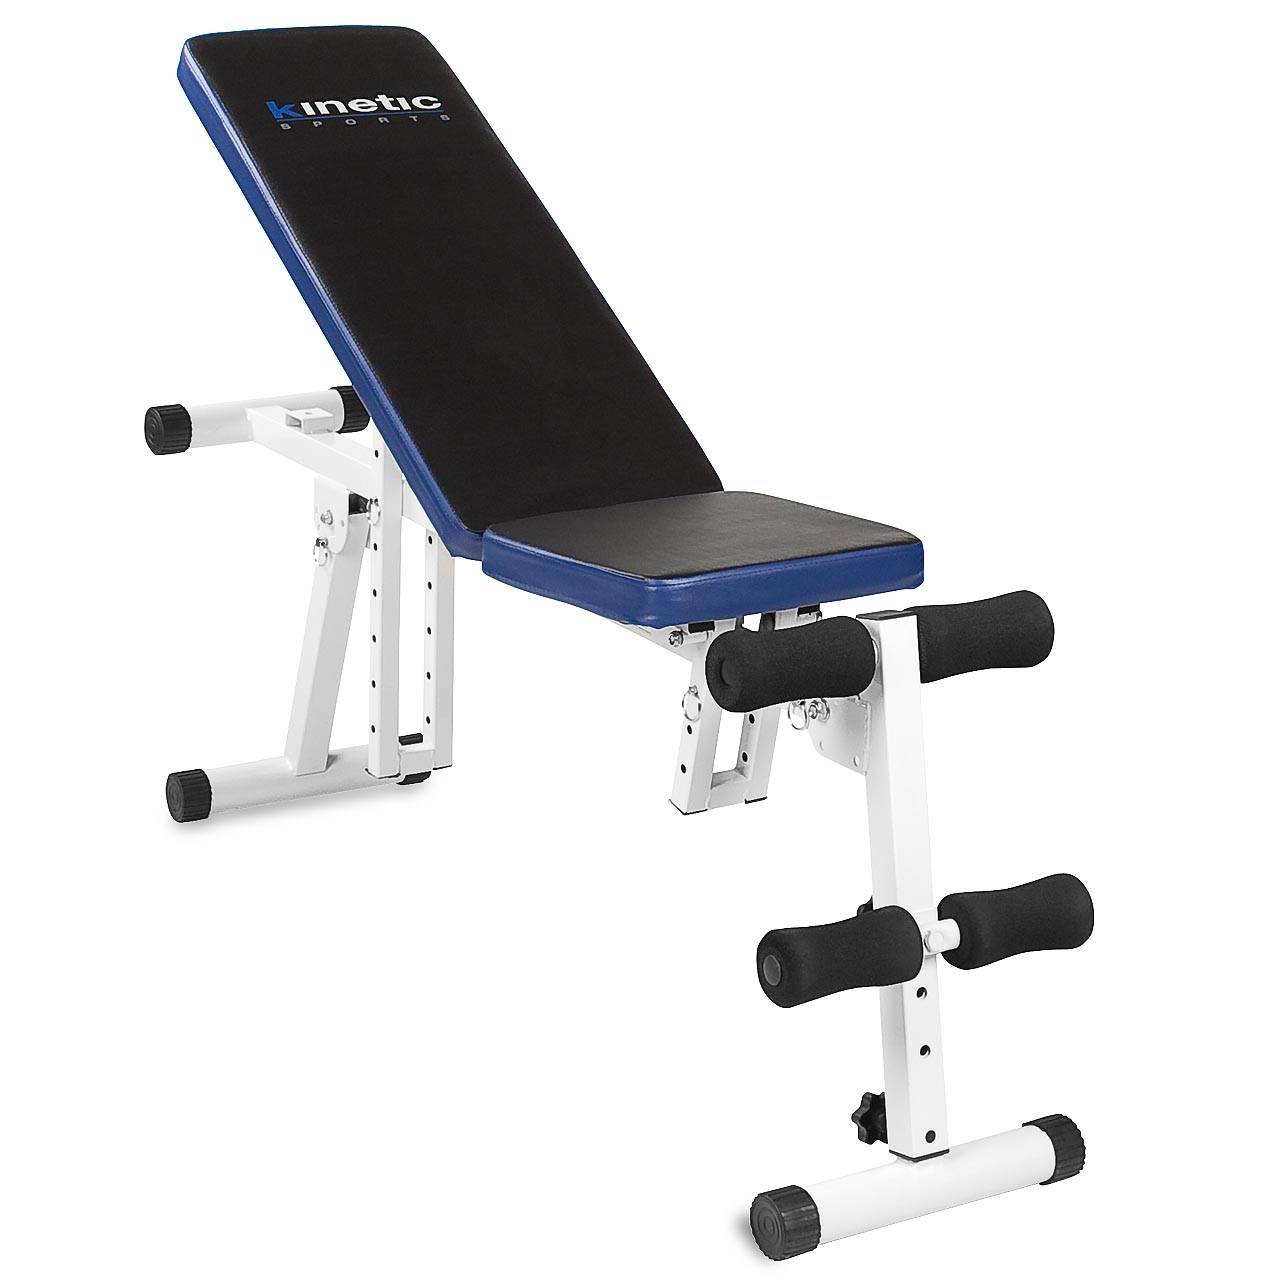 Sit up hantel bank bauch muskel aufbau trainingsbank - Comment utiliser un banc de musculation ...